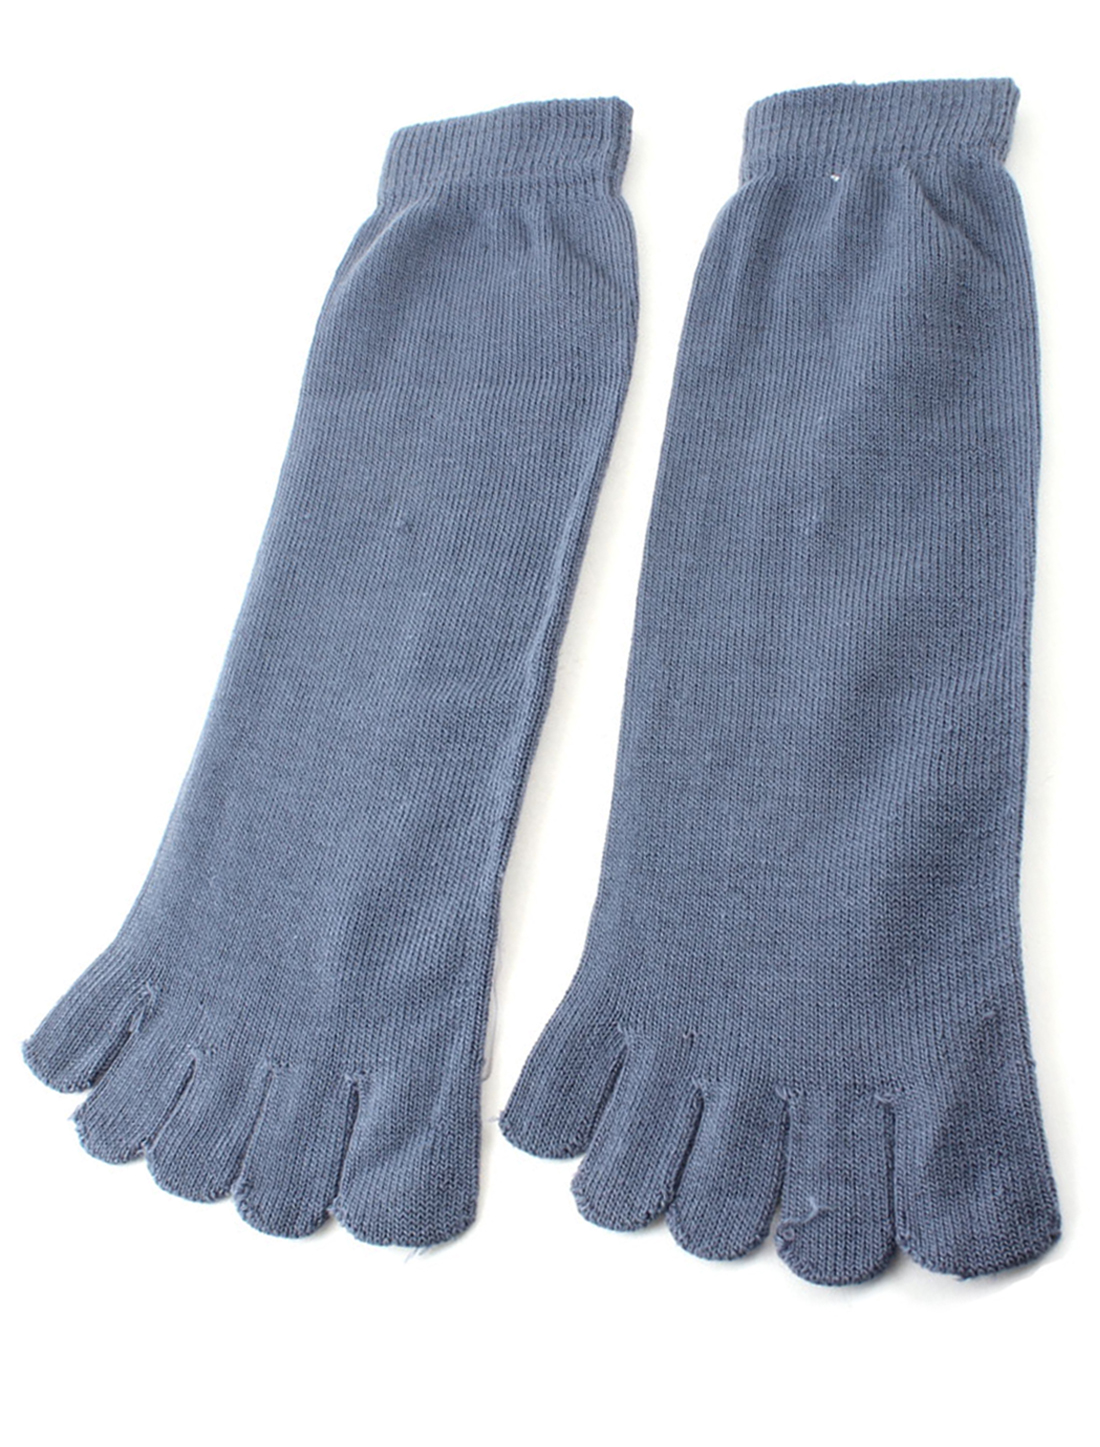 Woman Man Steel Blue Sport Stretchy Five Fingers Feet Toe Socks Pair